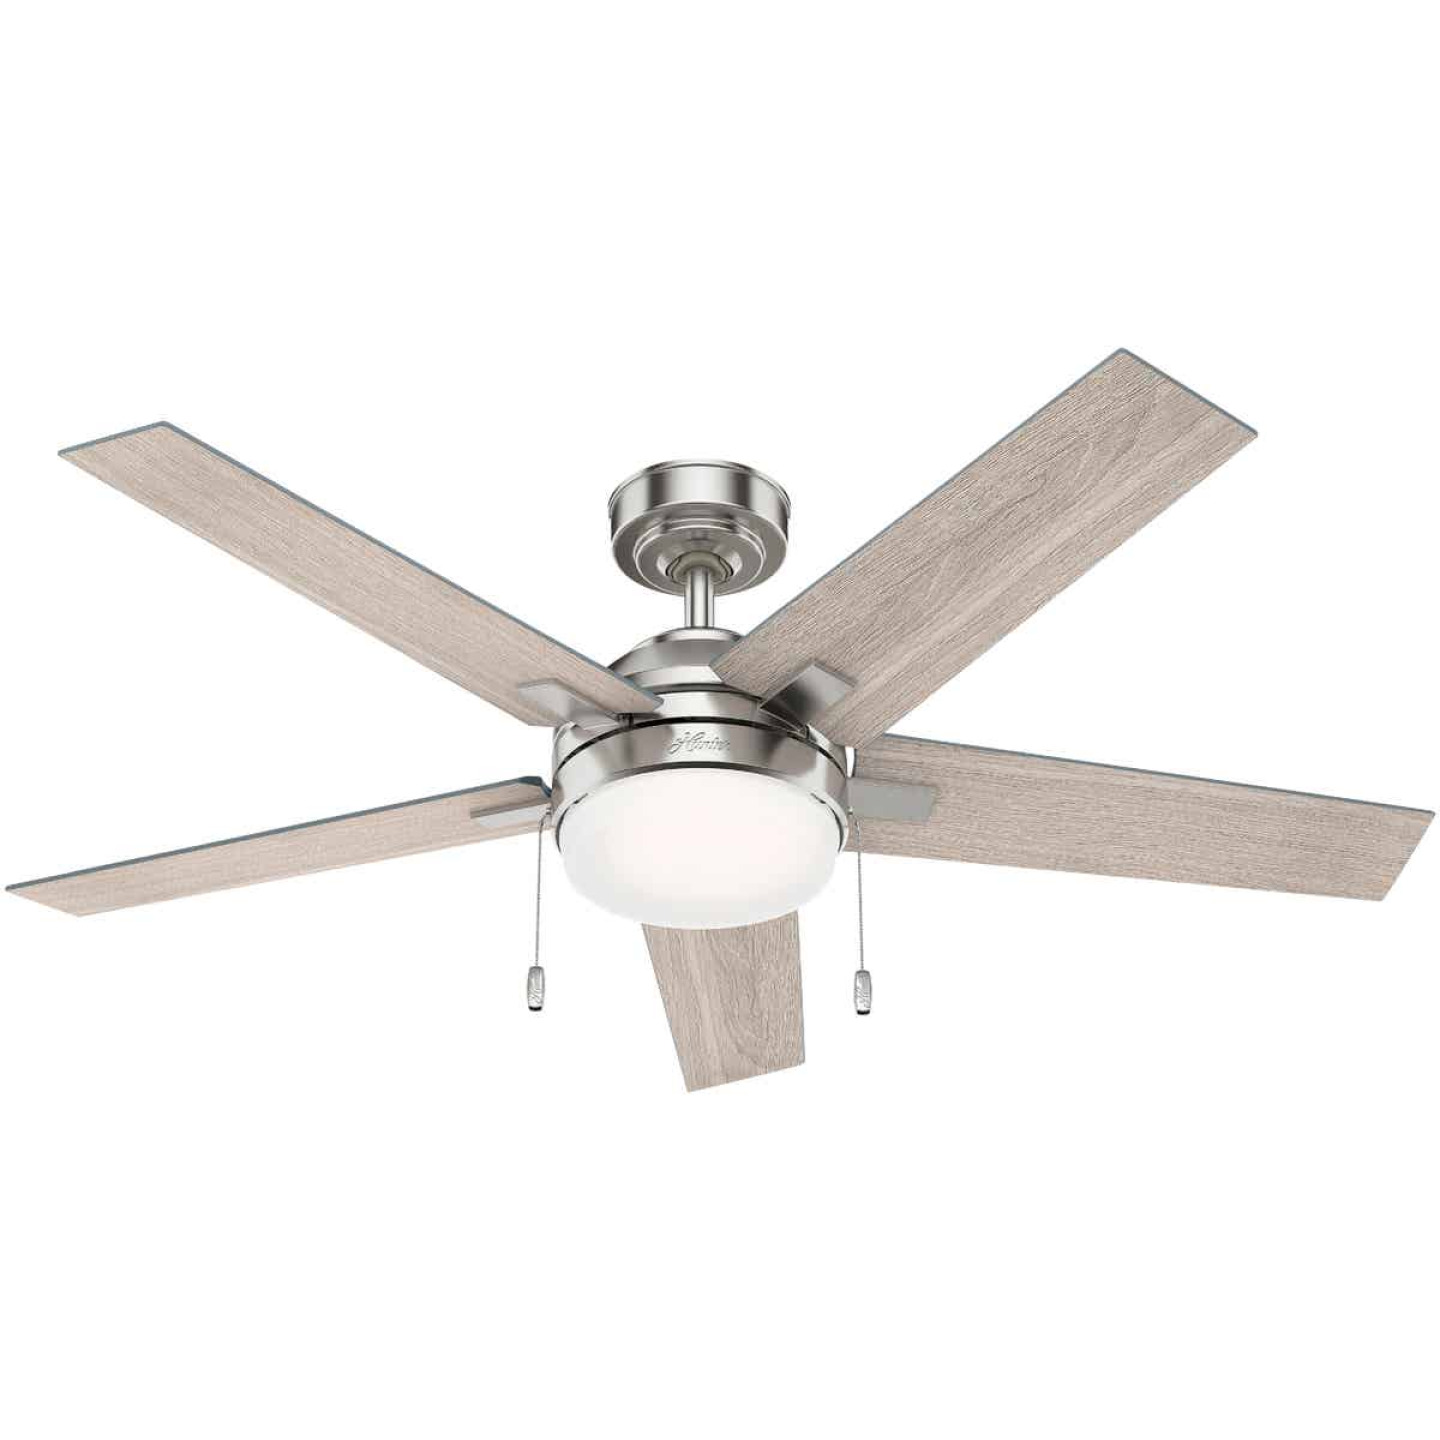 Hunter Bartlett 52 In. Brushed Nickel Ceiling Fan with Light Kit Image 1